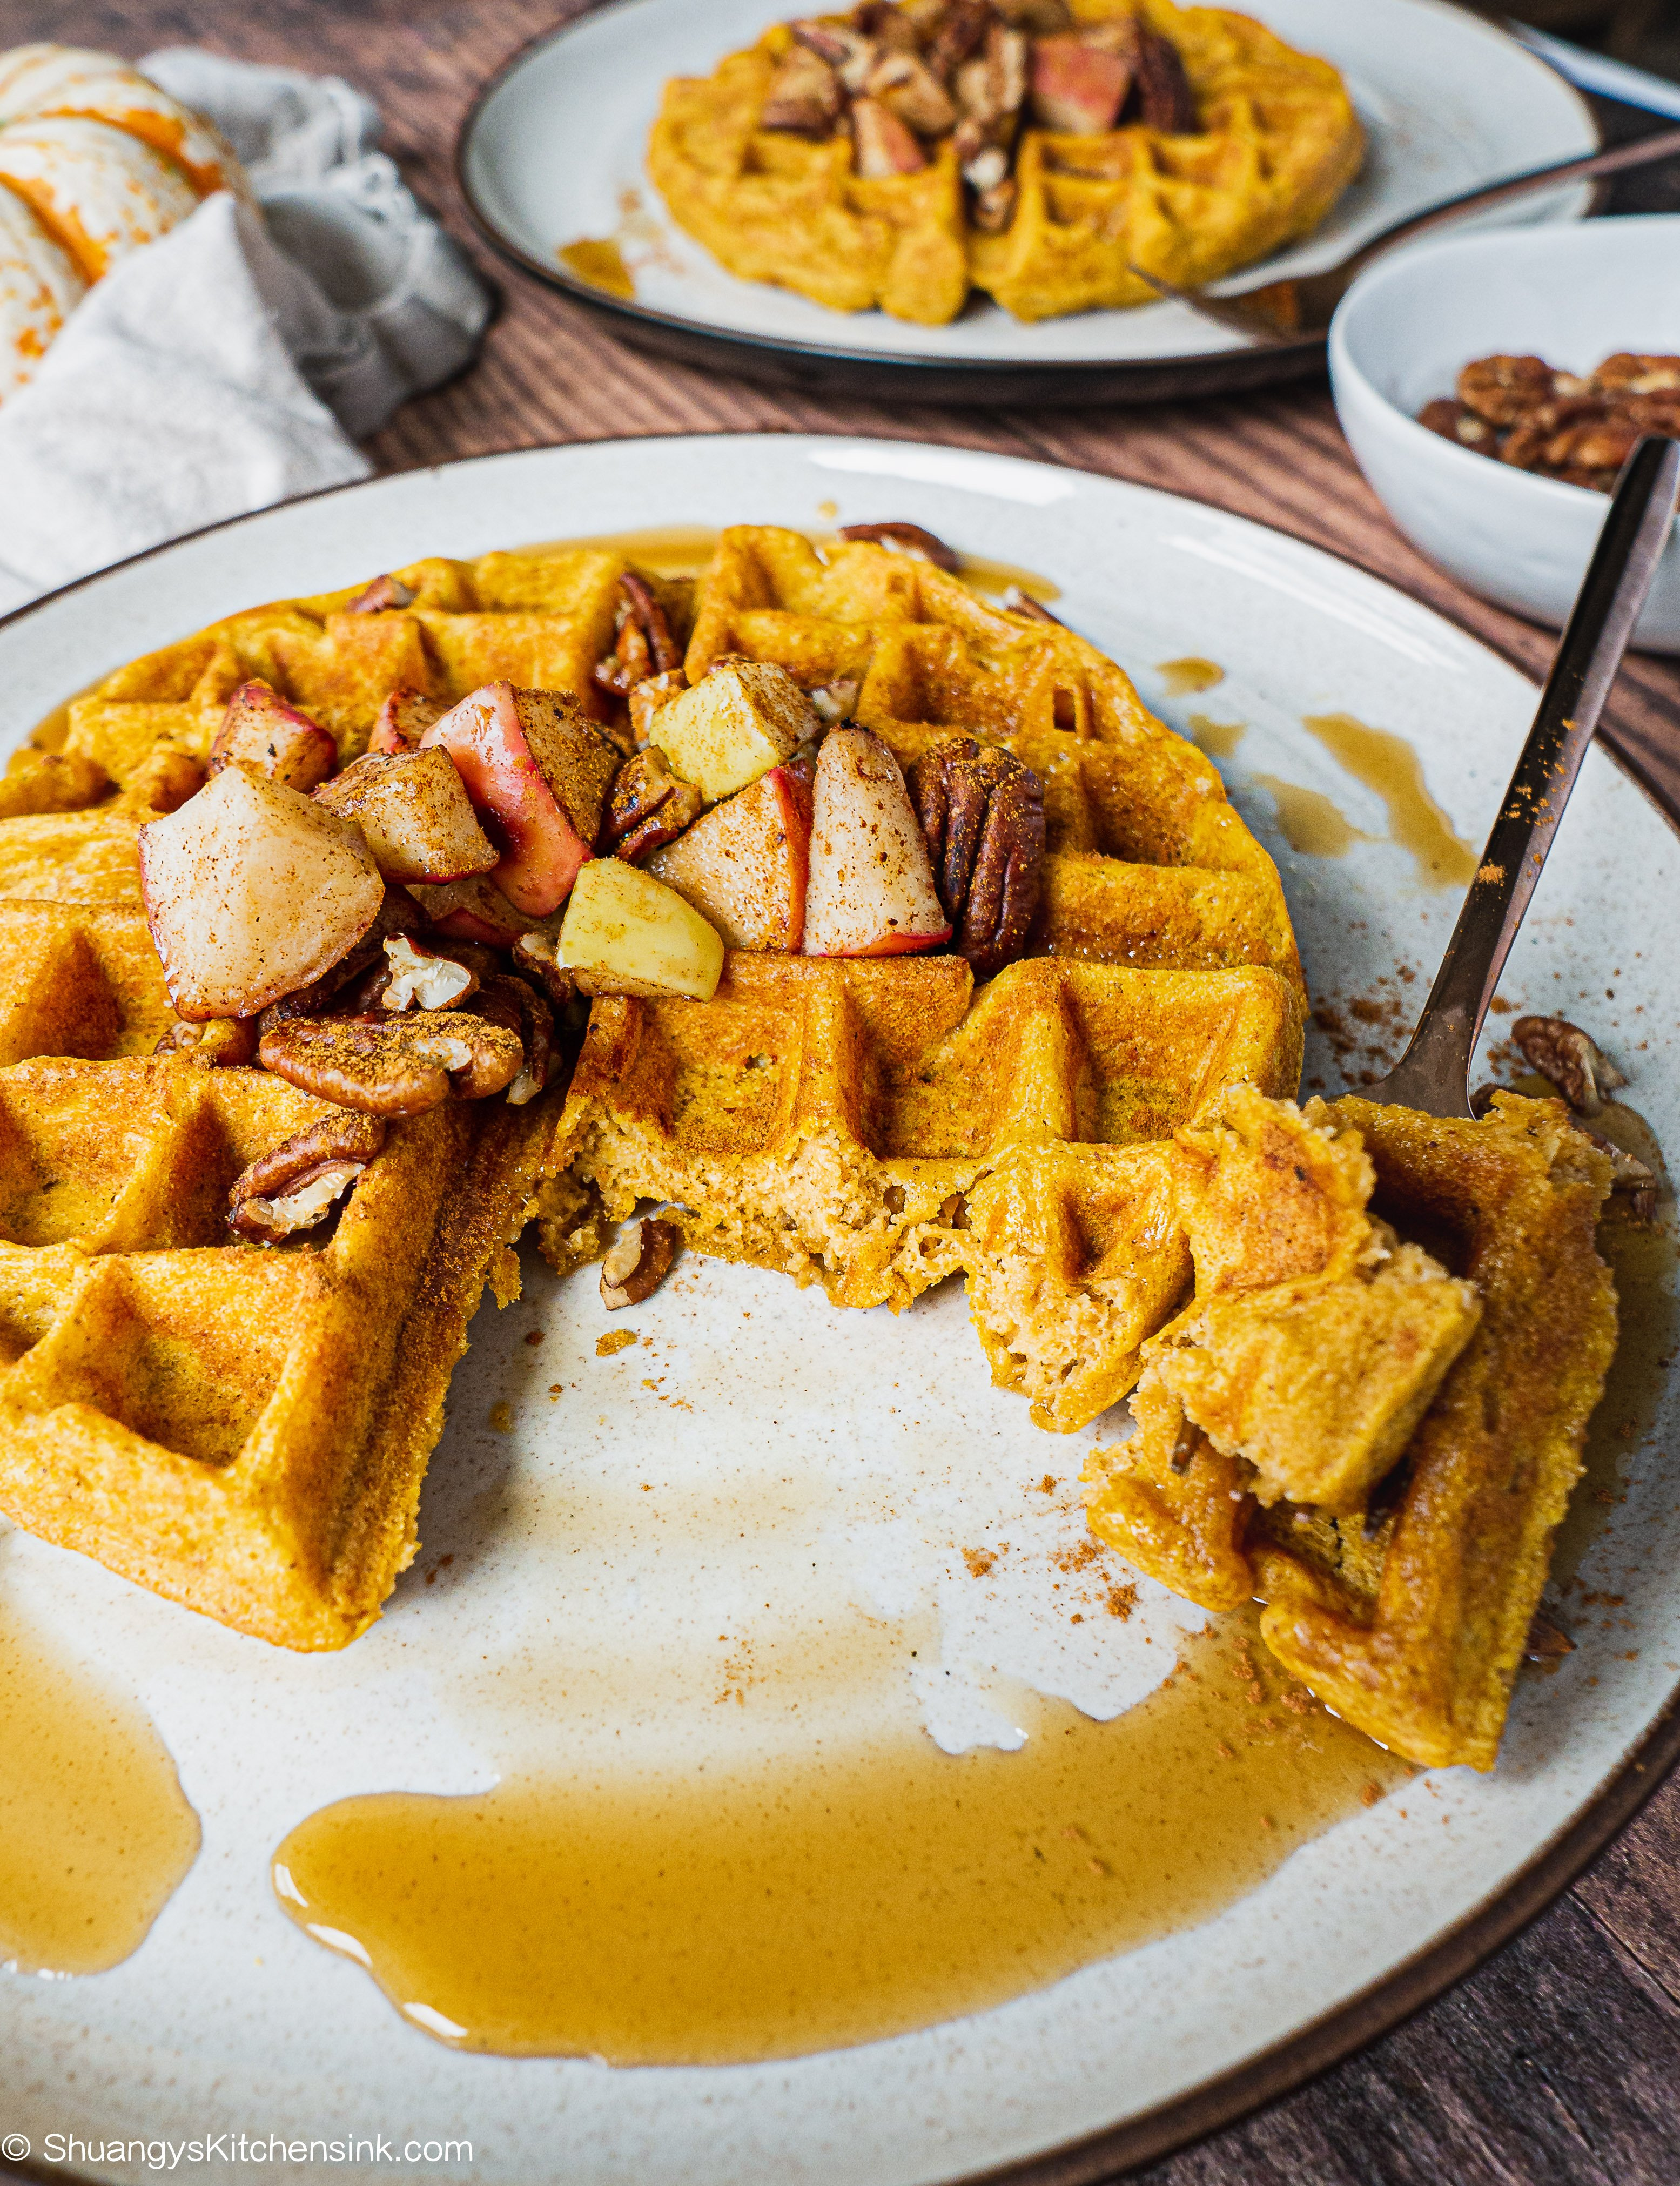 A paleo pumpkin waffle topped with sautéed apples and spiced pecans. Also drizzle of maple syrup. There is another waffle in the background and a little pumpkin on the kitchen towel. A fork has taken a bite off of the waffle. the texutre inside looks fluffy.